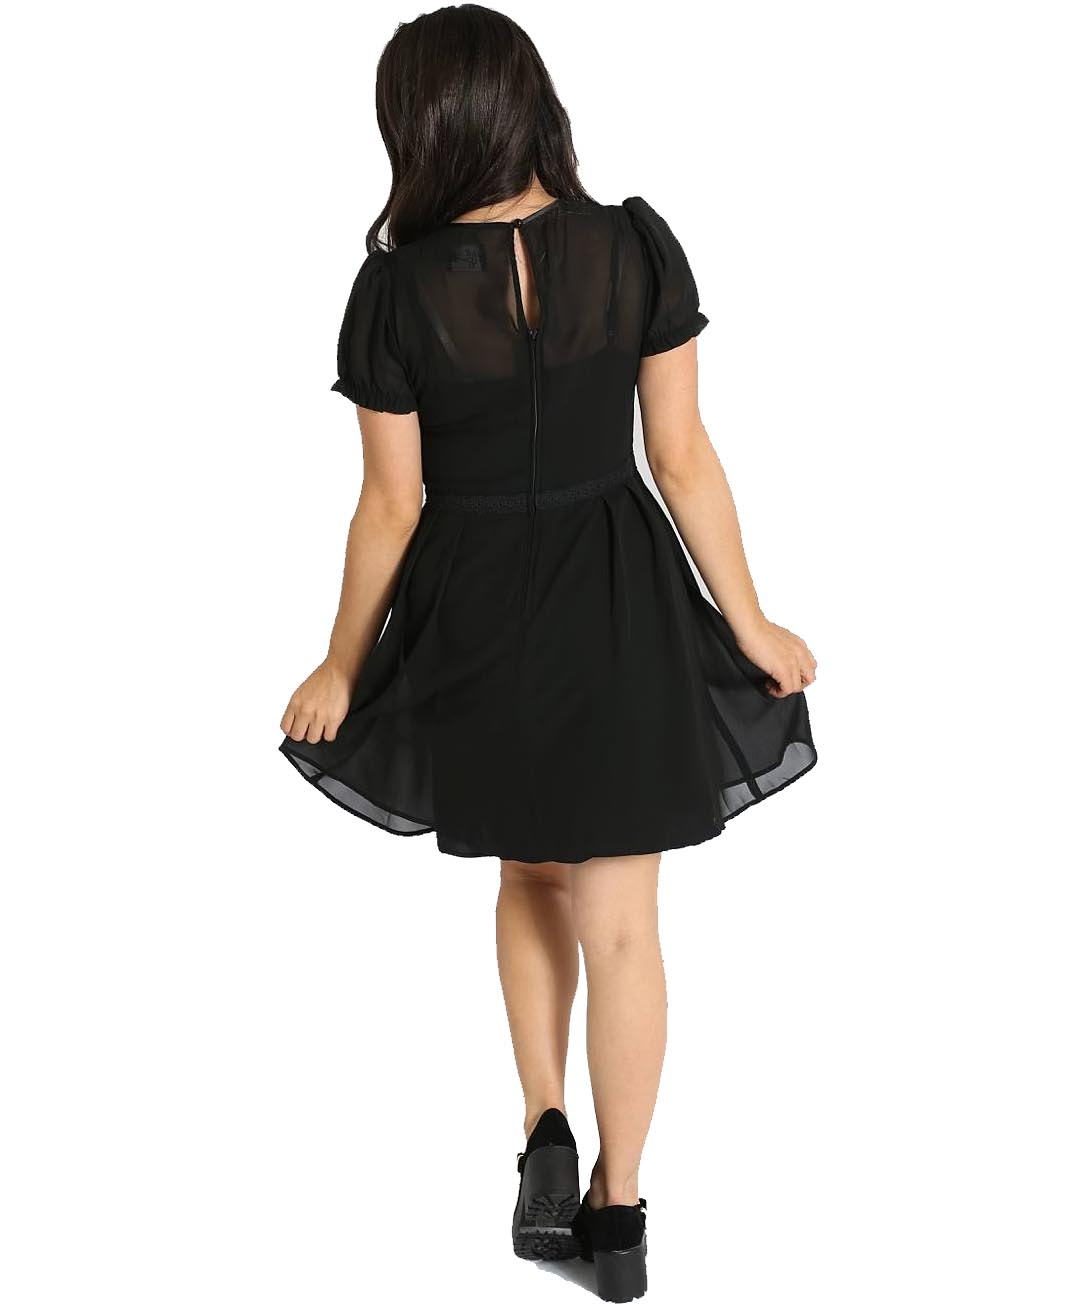 Hell-Bunny-Gothic-Black-Floaty-Mini-Dress-ARIA-Pussy-Bow-All-Sizes thumbnail 9